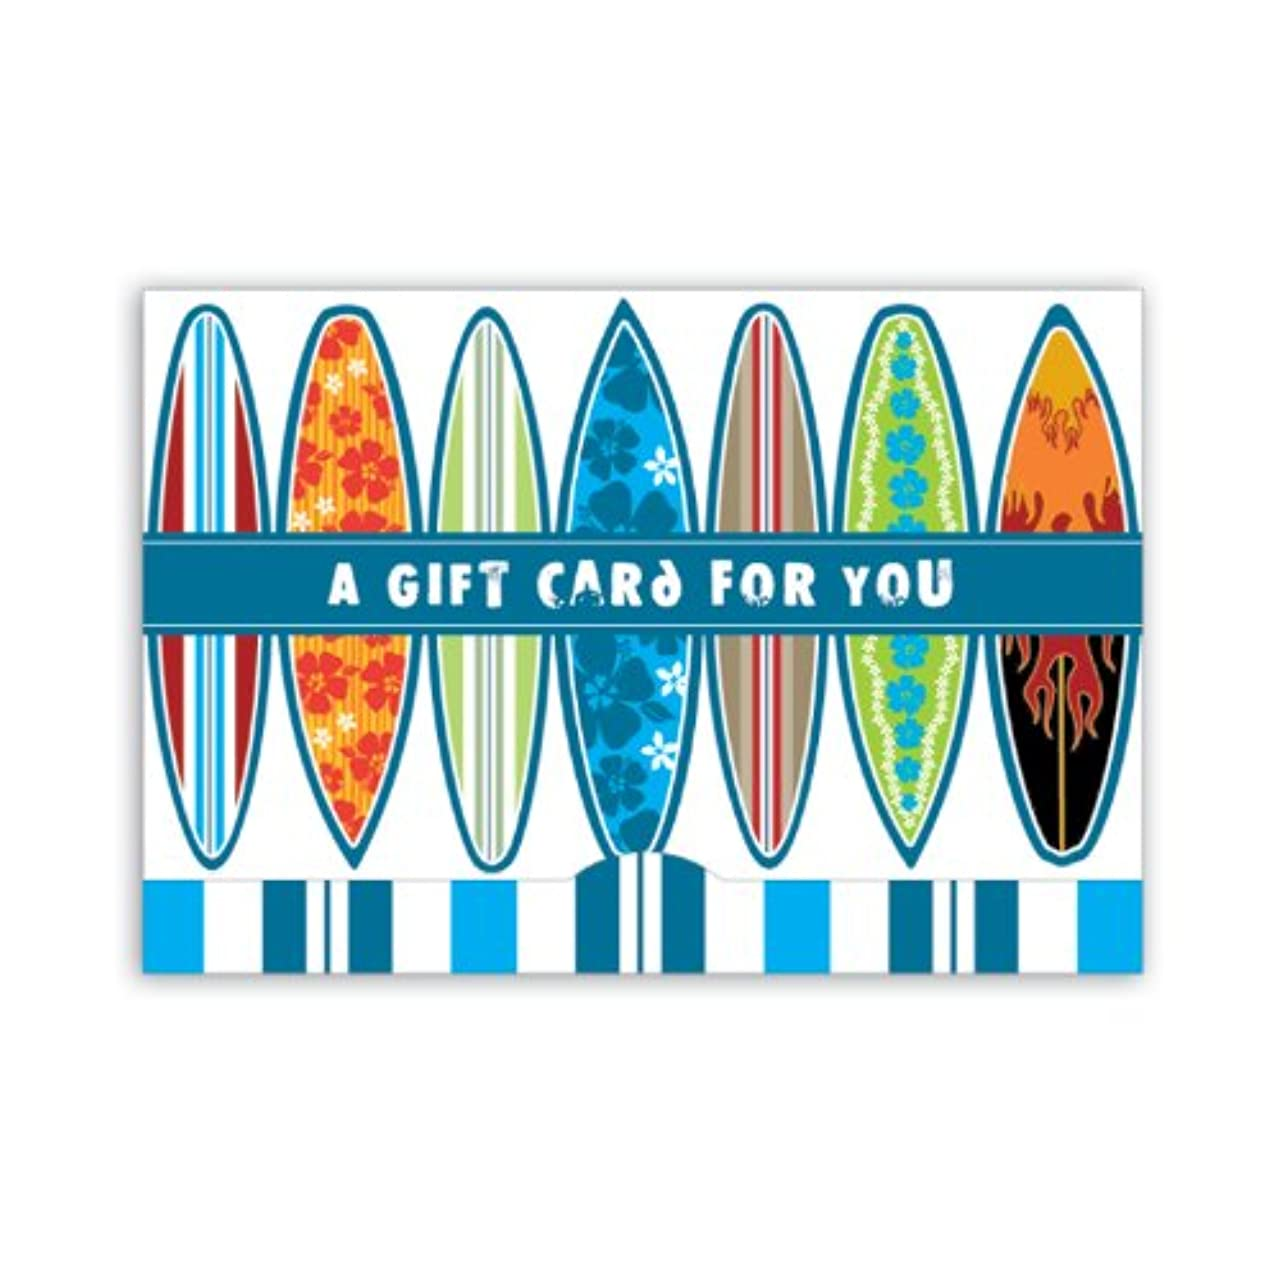 Jillson Roberts Gift Card Holders, A Gift for You, Surfboards, 6-Count (GCP044)